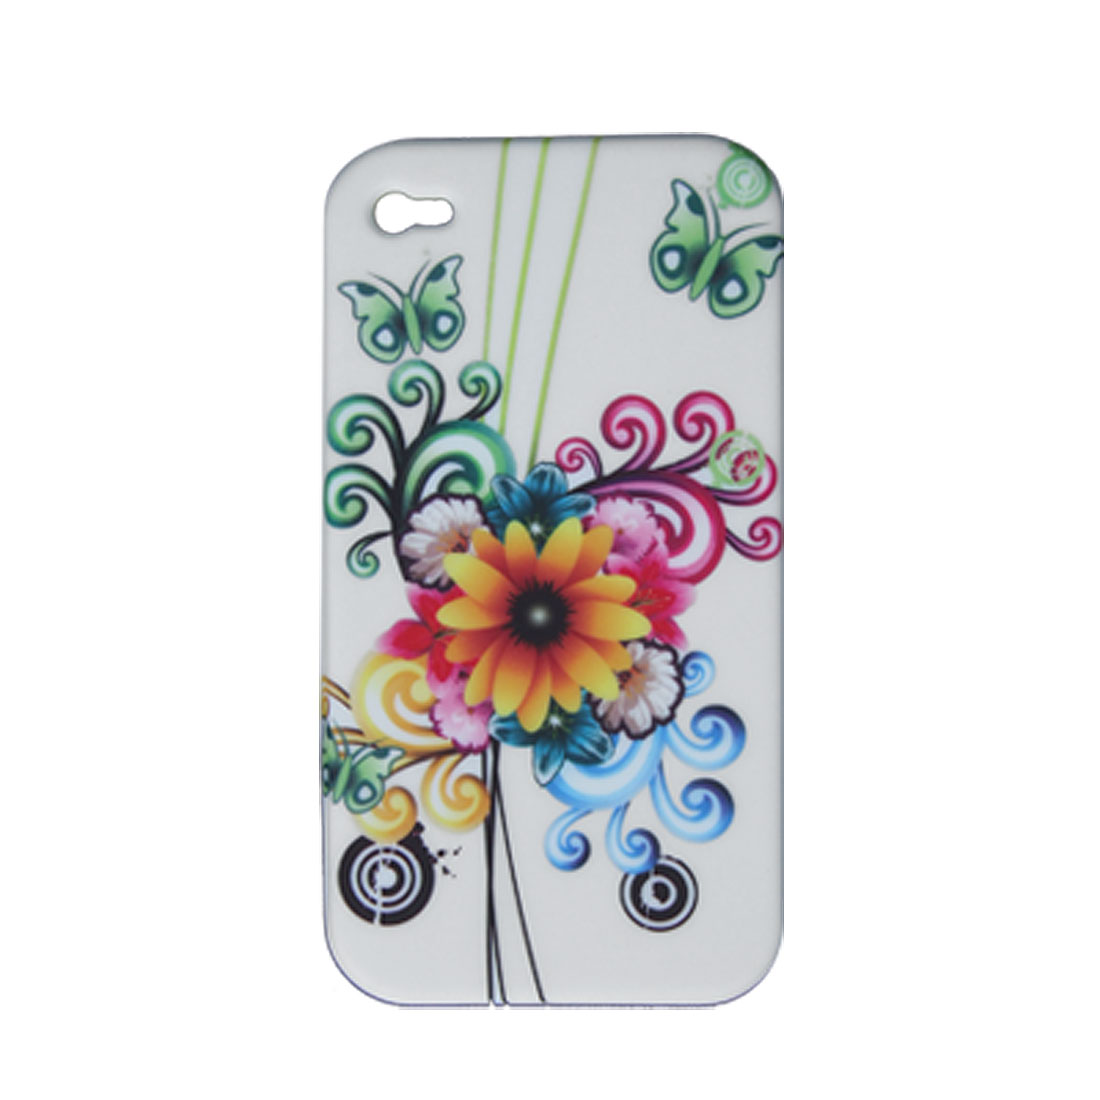 Flower Style Soft Plastic Case + Screen Guard for iPhone 4 4G